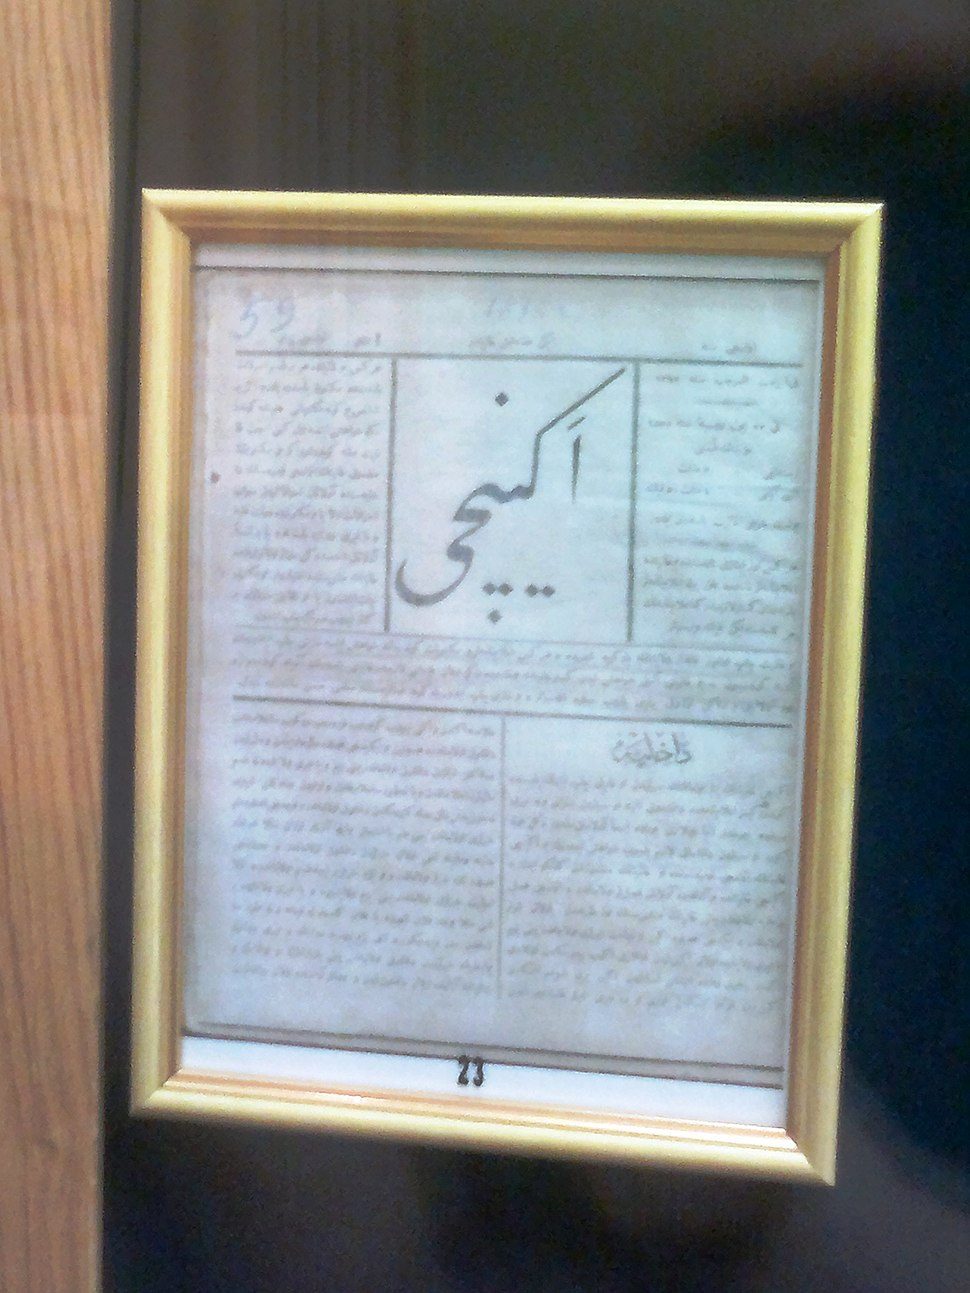 First eddition of Ekinchi newspaper in Museum of the History of Azerbaijan